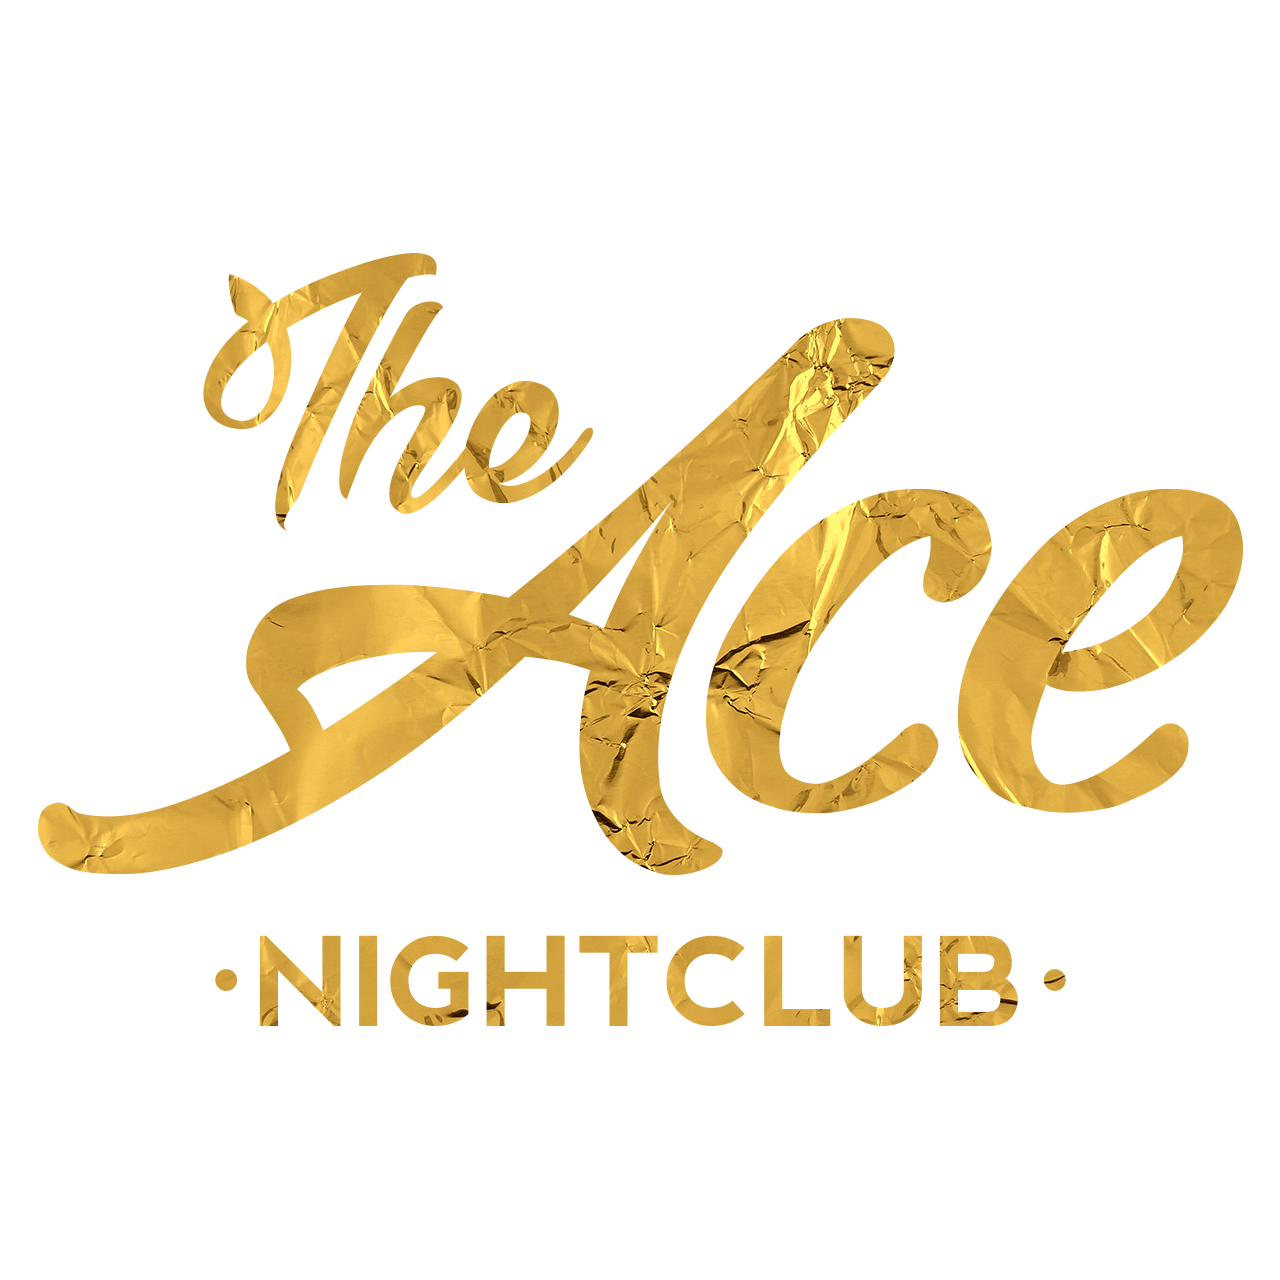 The Ace Nightclub